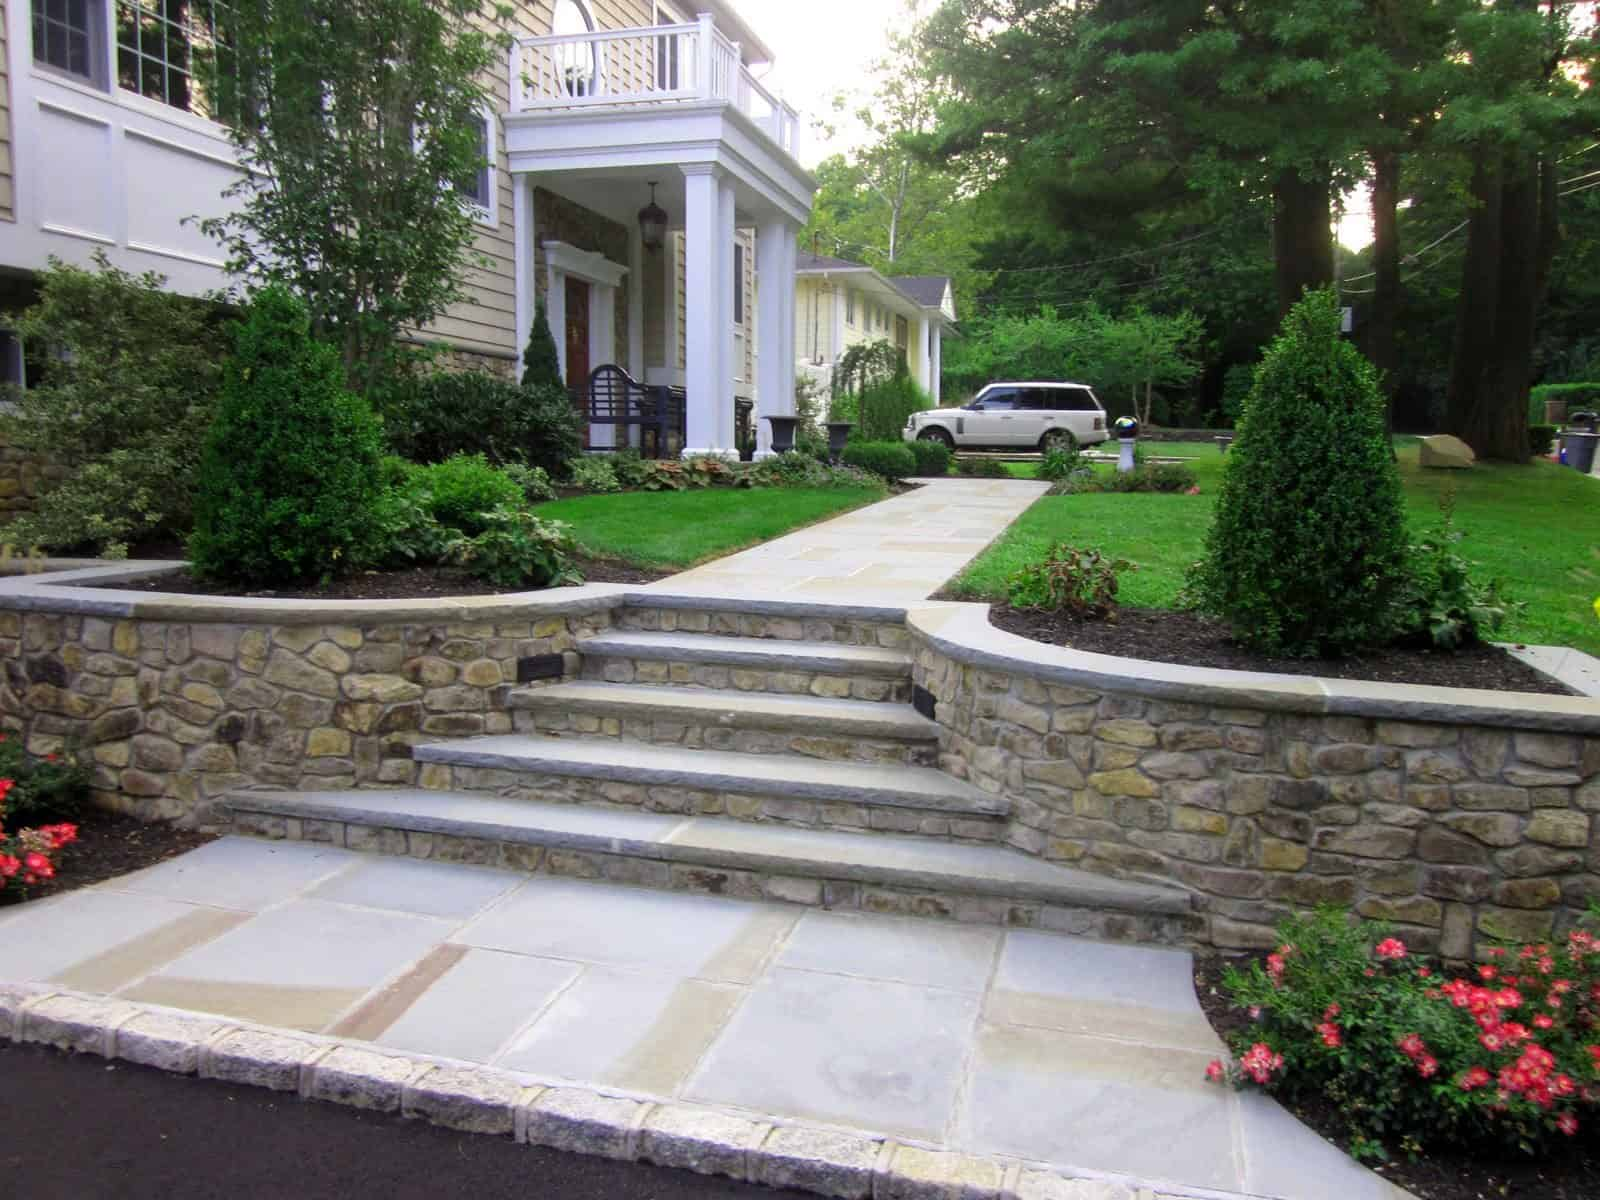 Natural Thin Stone Veneer - PA Ledgestone with Rock Faced Bluestone Cap and Treads - Glen Cove, Long Island NY